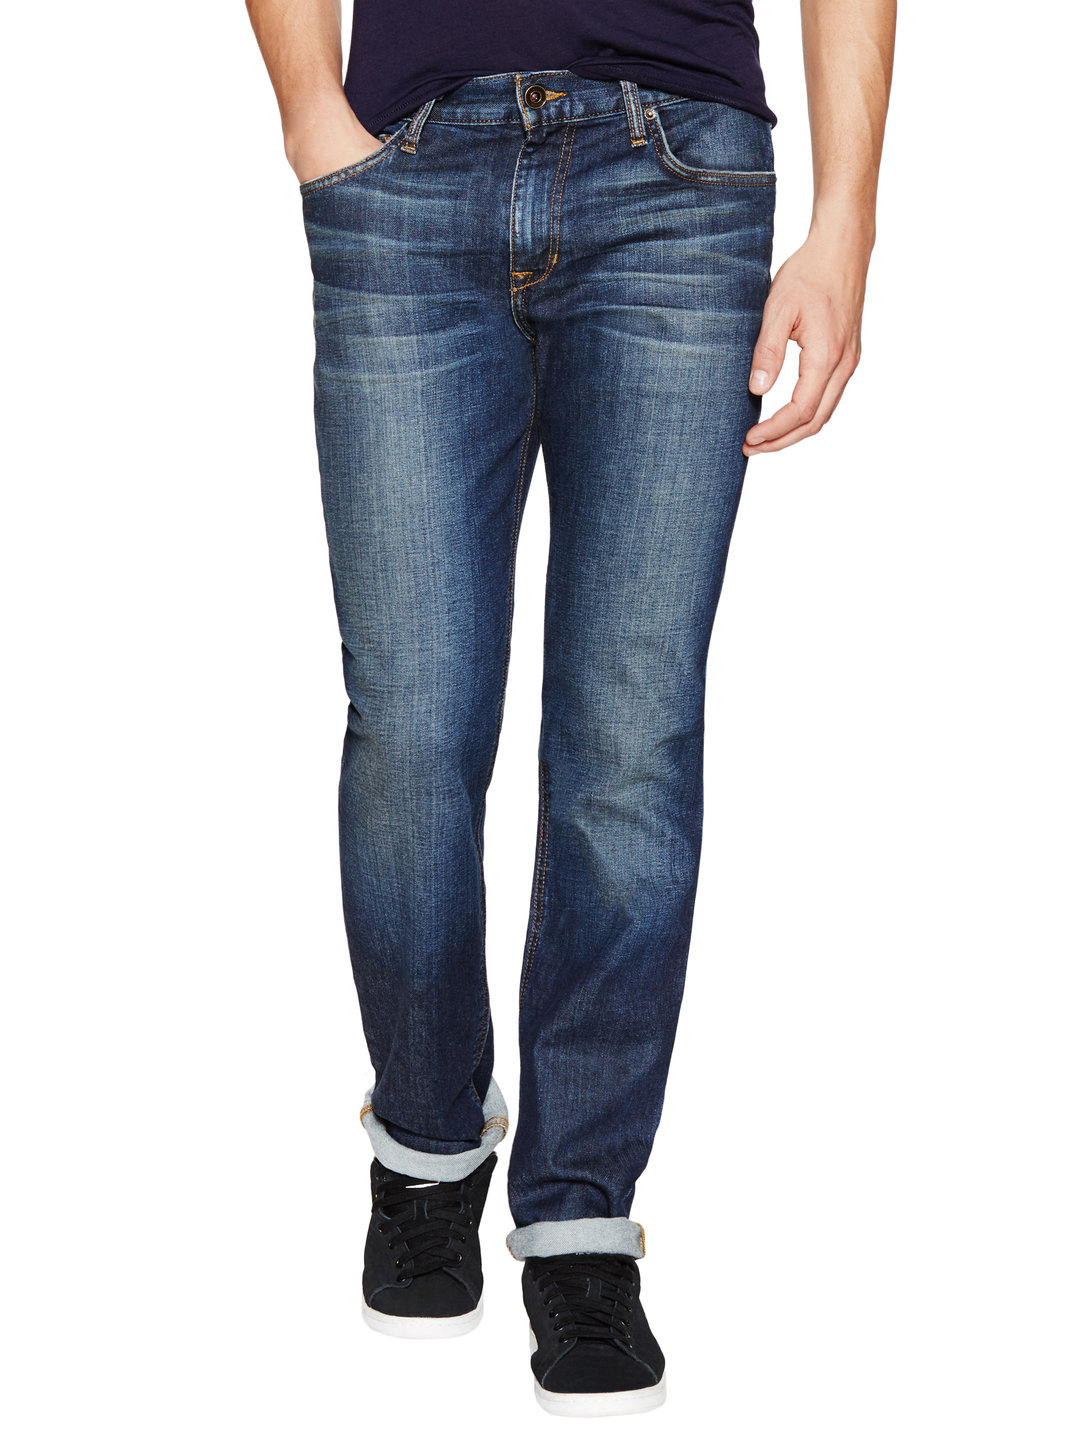 joes jeans Straight Narrow Brixton Denim Jeans